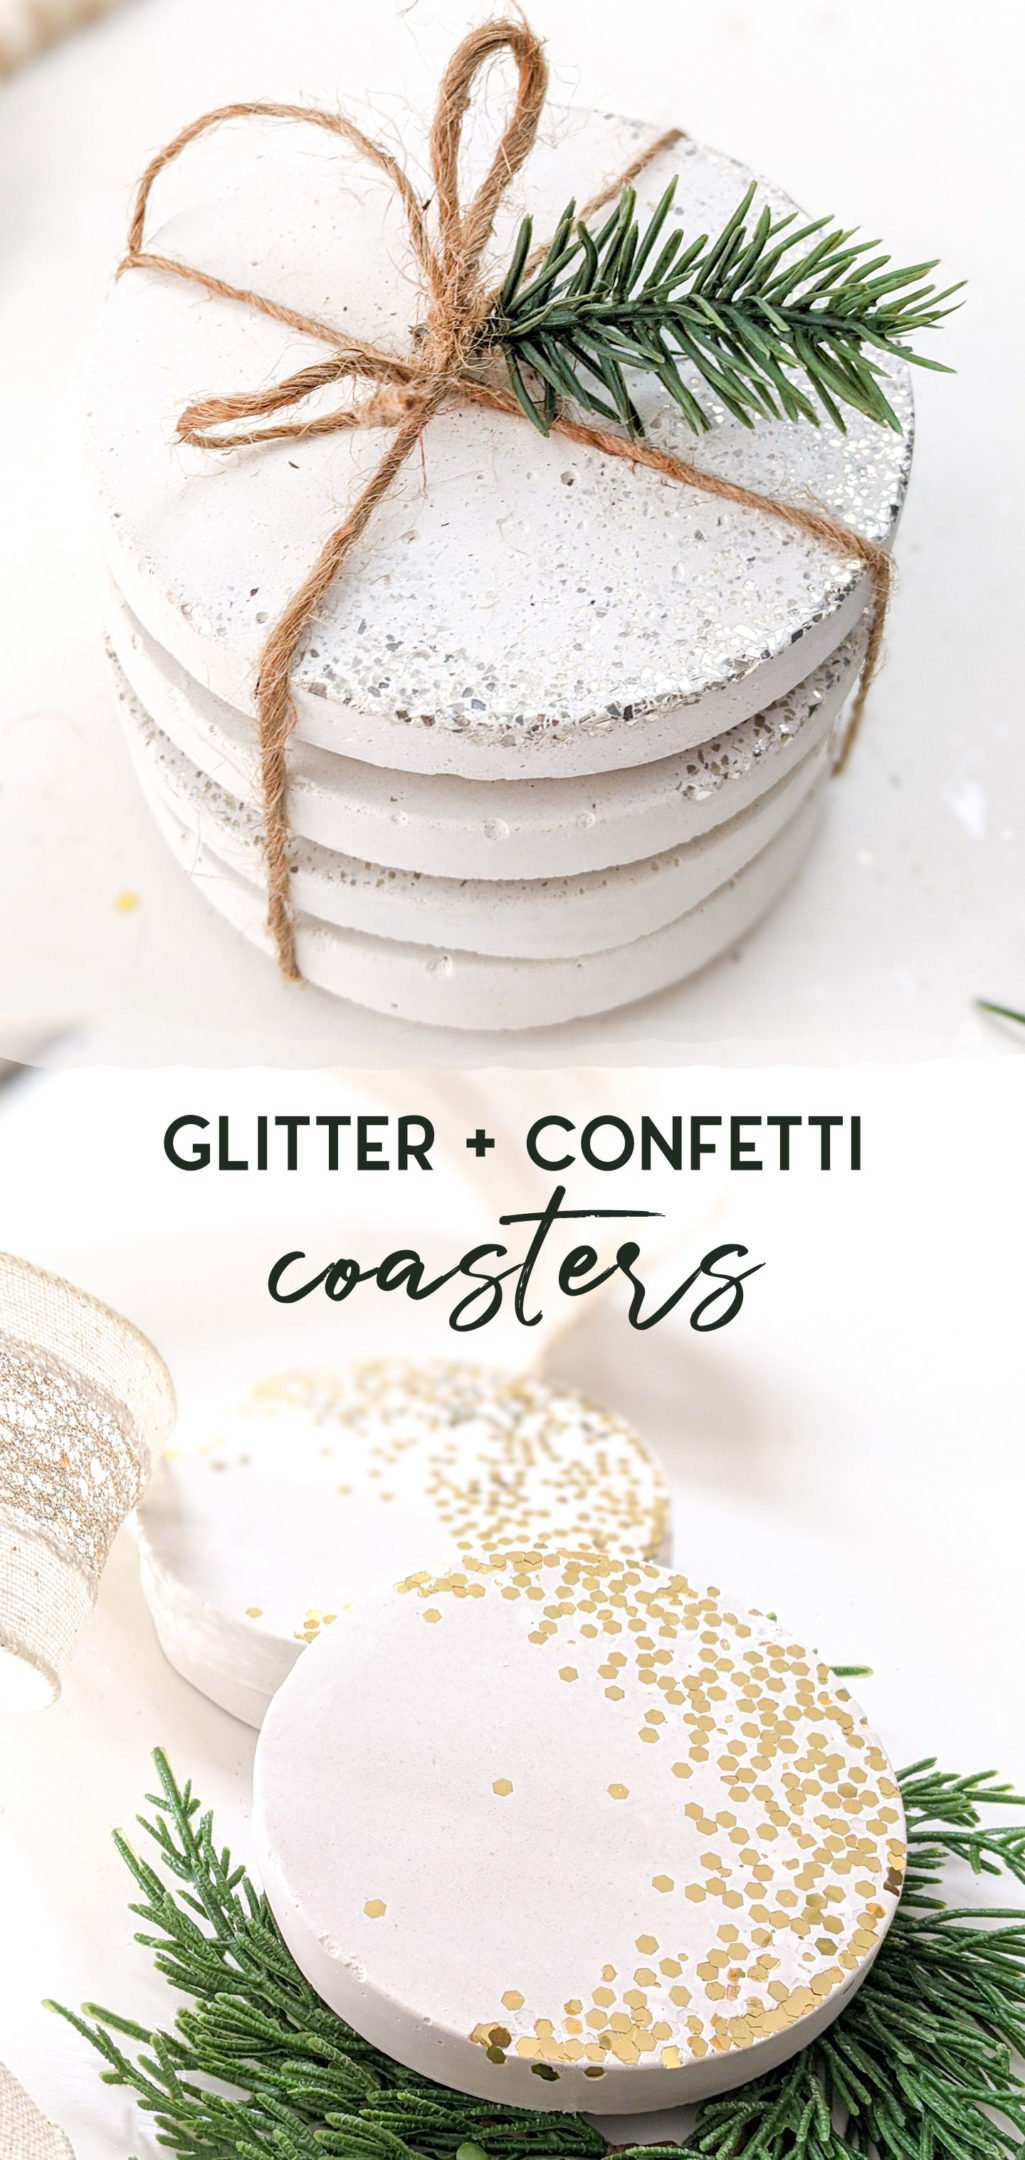 Glitter and confetti concrete coasters using white concrete and a silicone mode - 3 different beautiful options from just a few supplies! Makes an excellent hostess give or New Years Eve party decor. #hostessgift #partygift #NYE #newyears #christmas #coasters #concrete #whiteconcrete #diycoaster